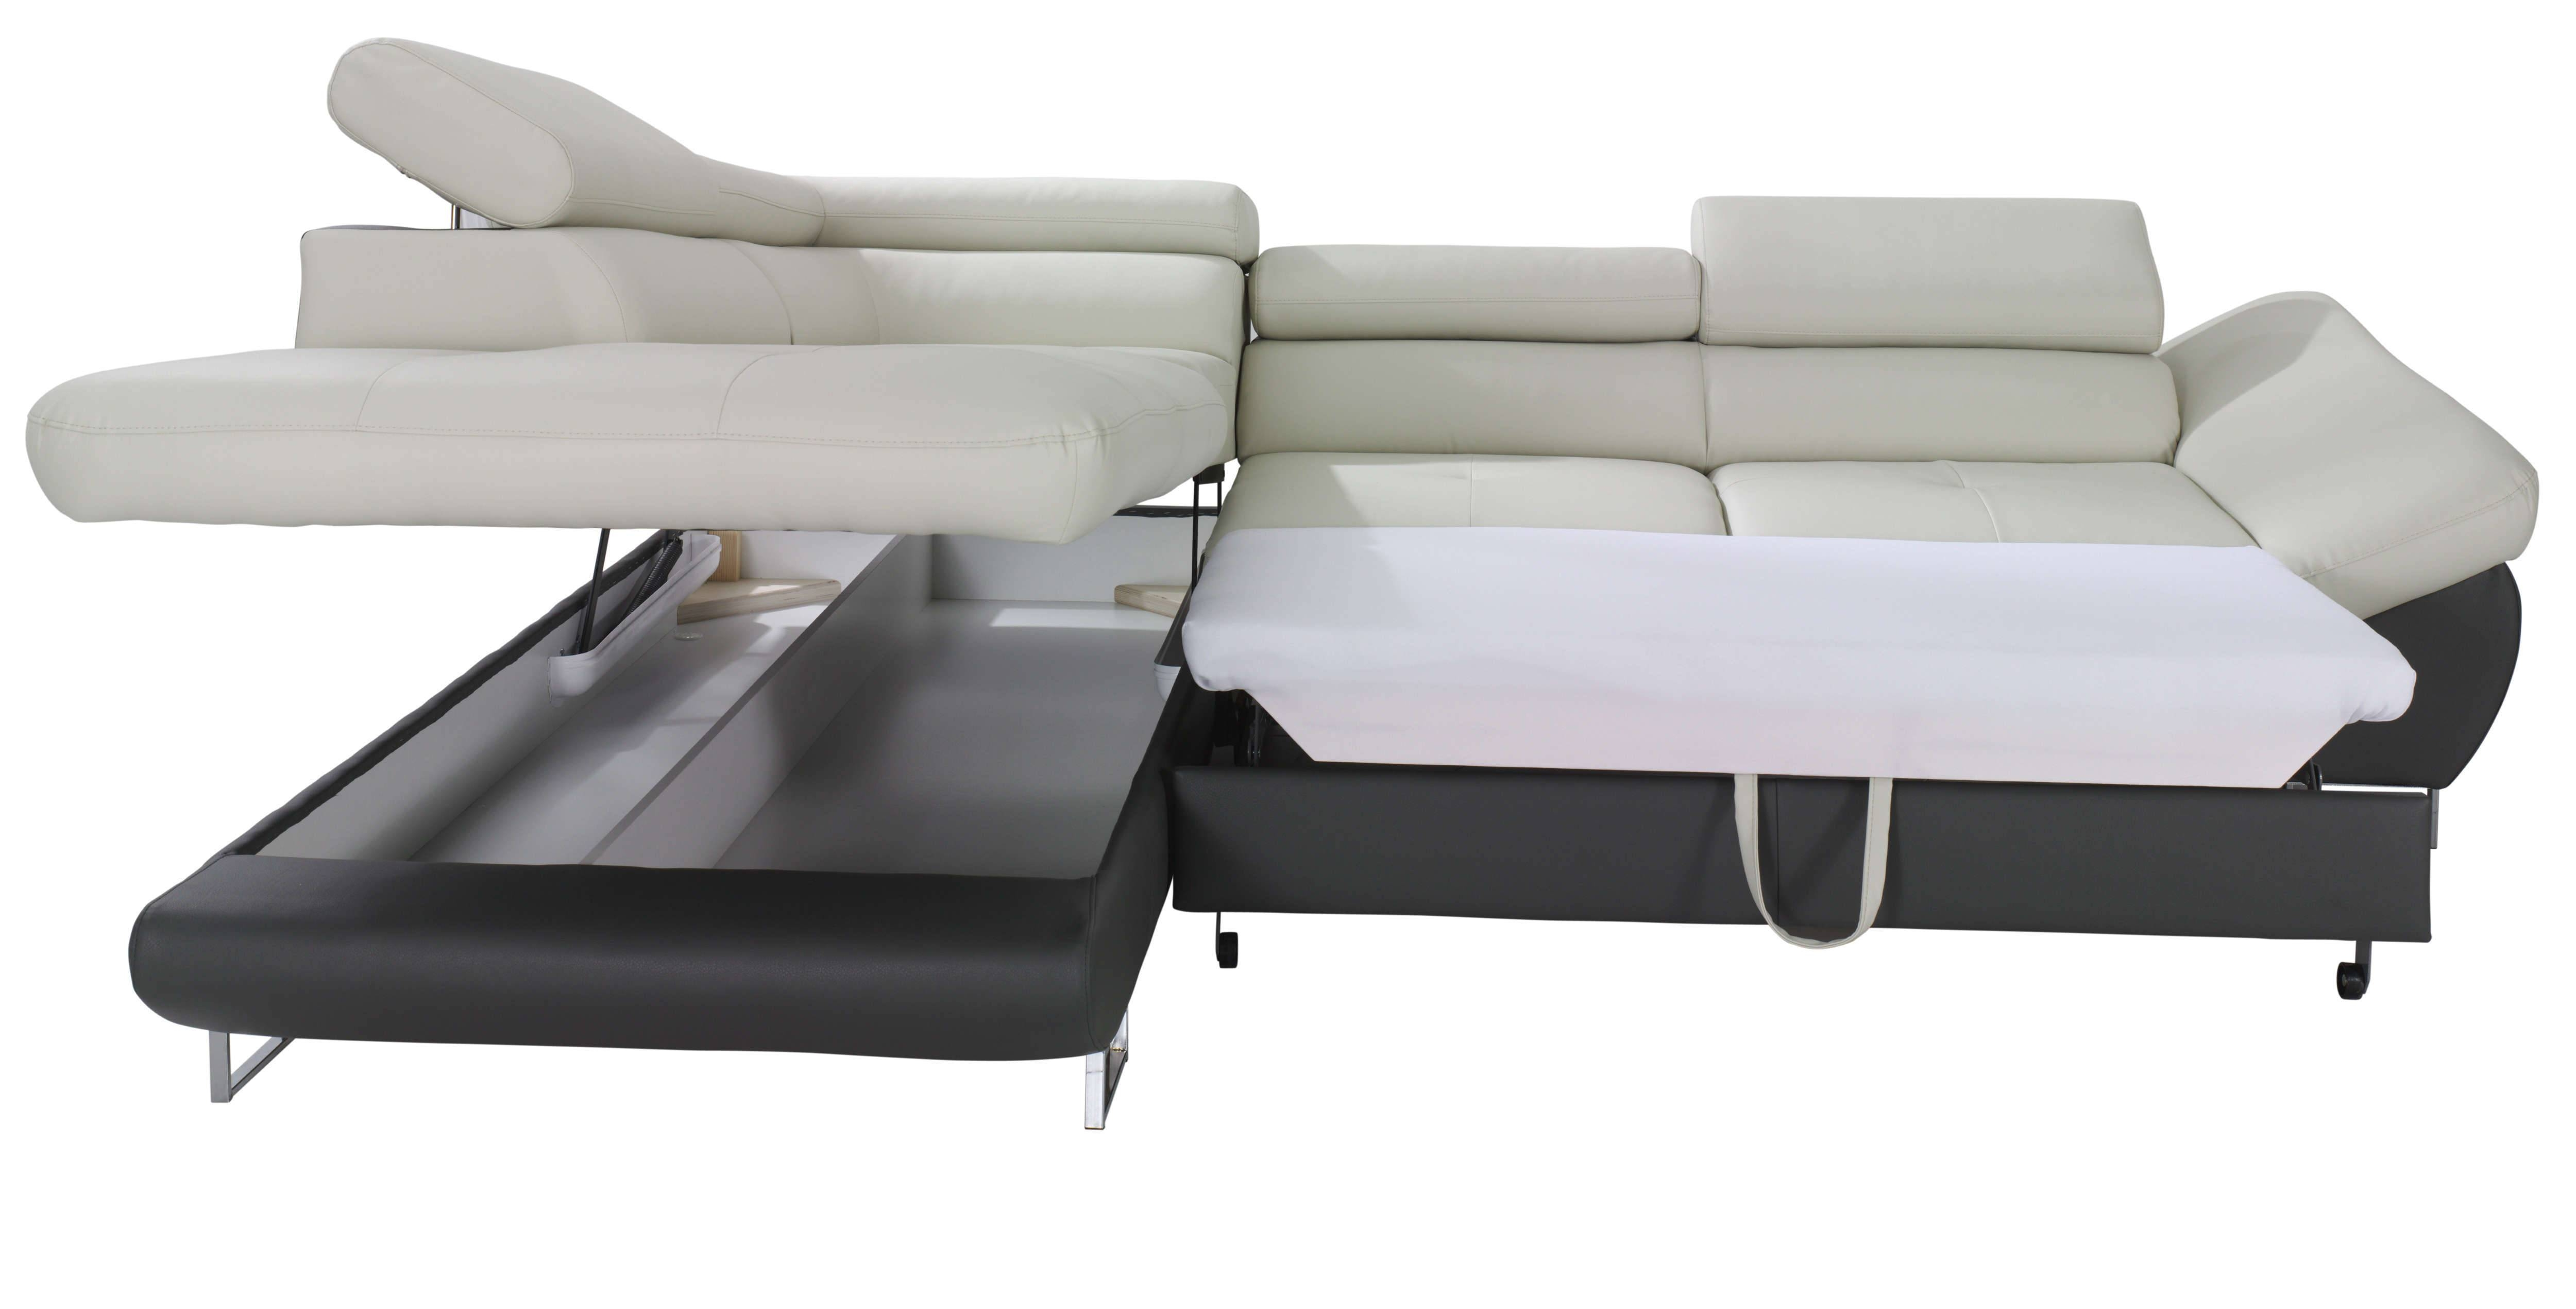 30 Best Collection of Sectional Sofa Beds